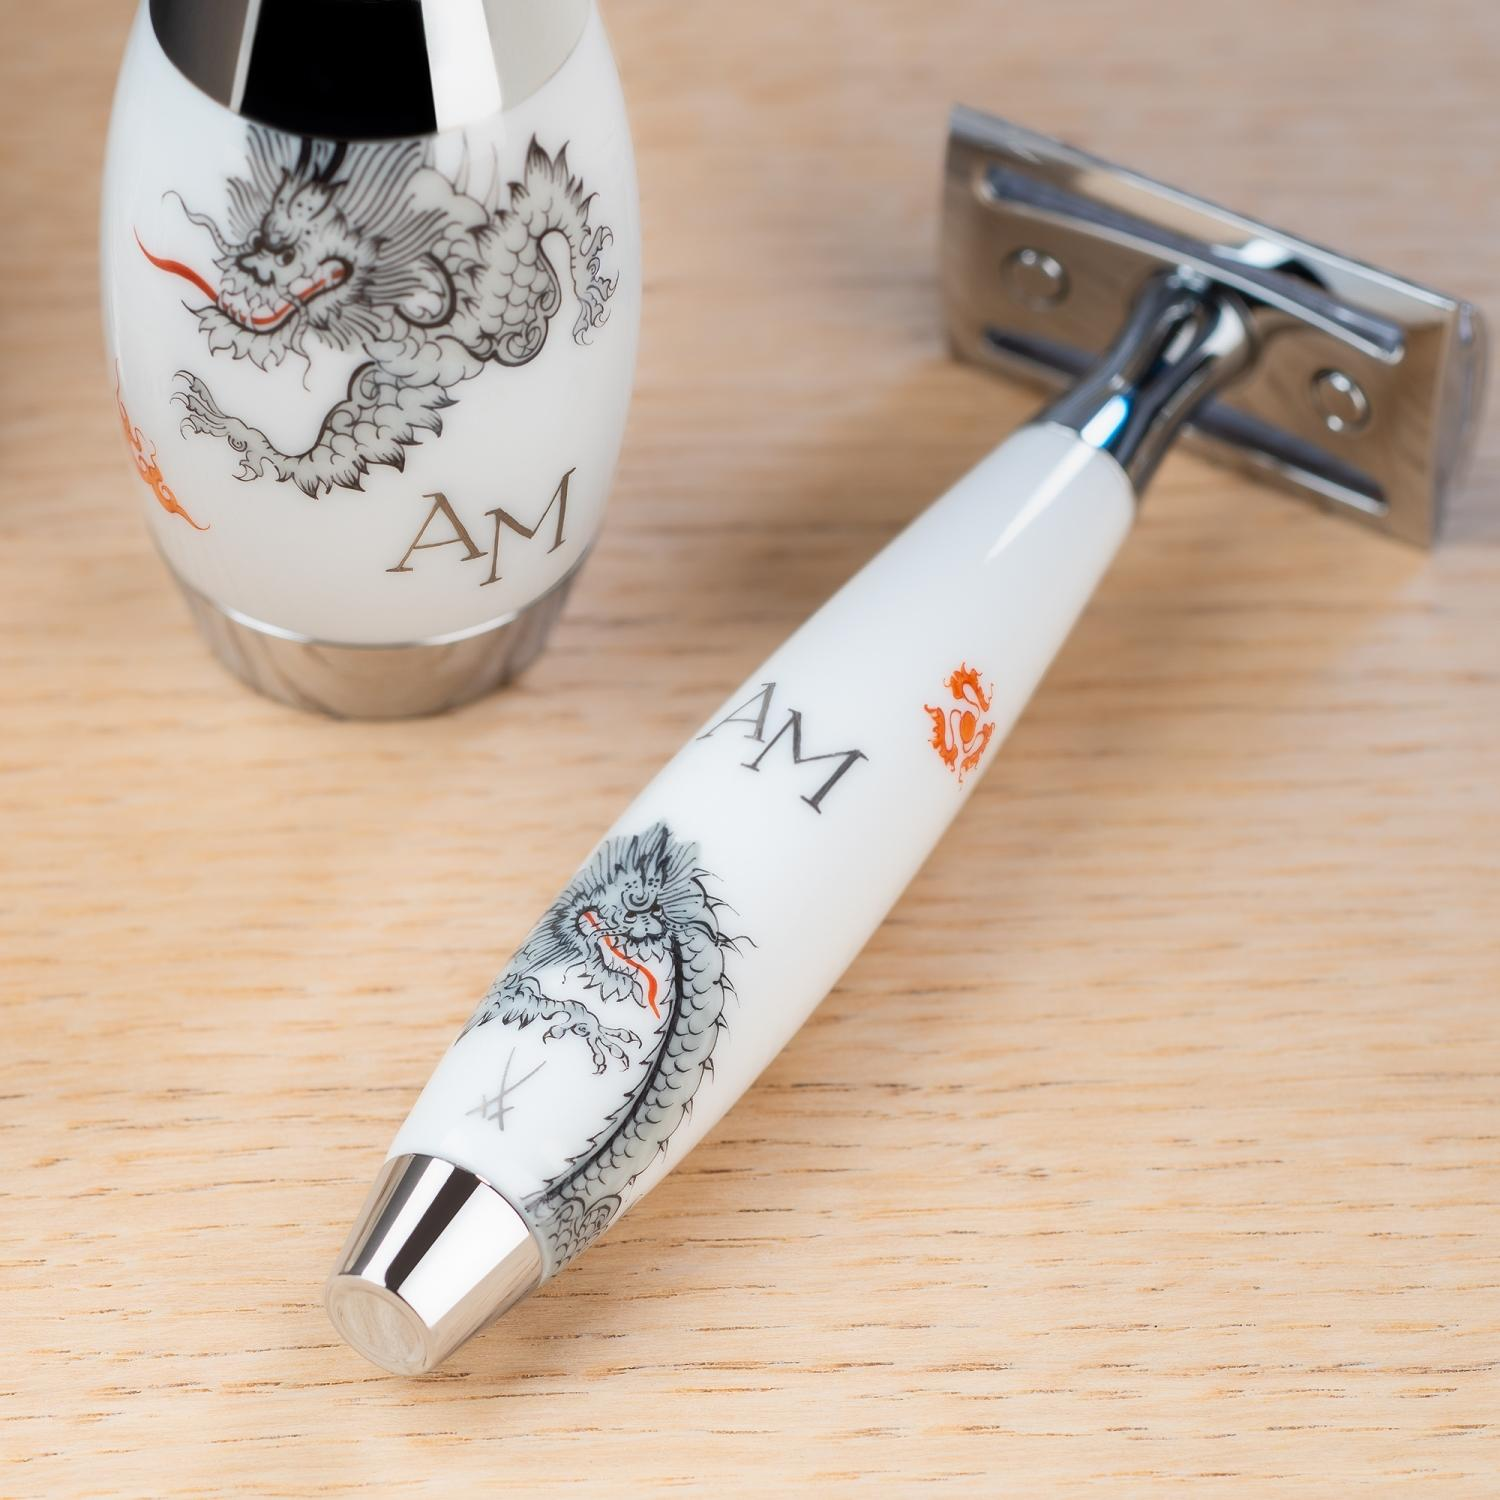 MÜHLE EDITION MEISSEN Safety Razor with personalised monogram